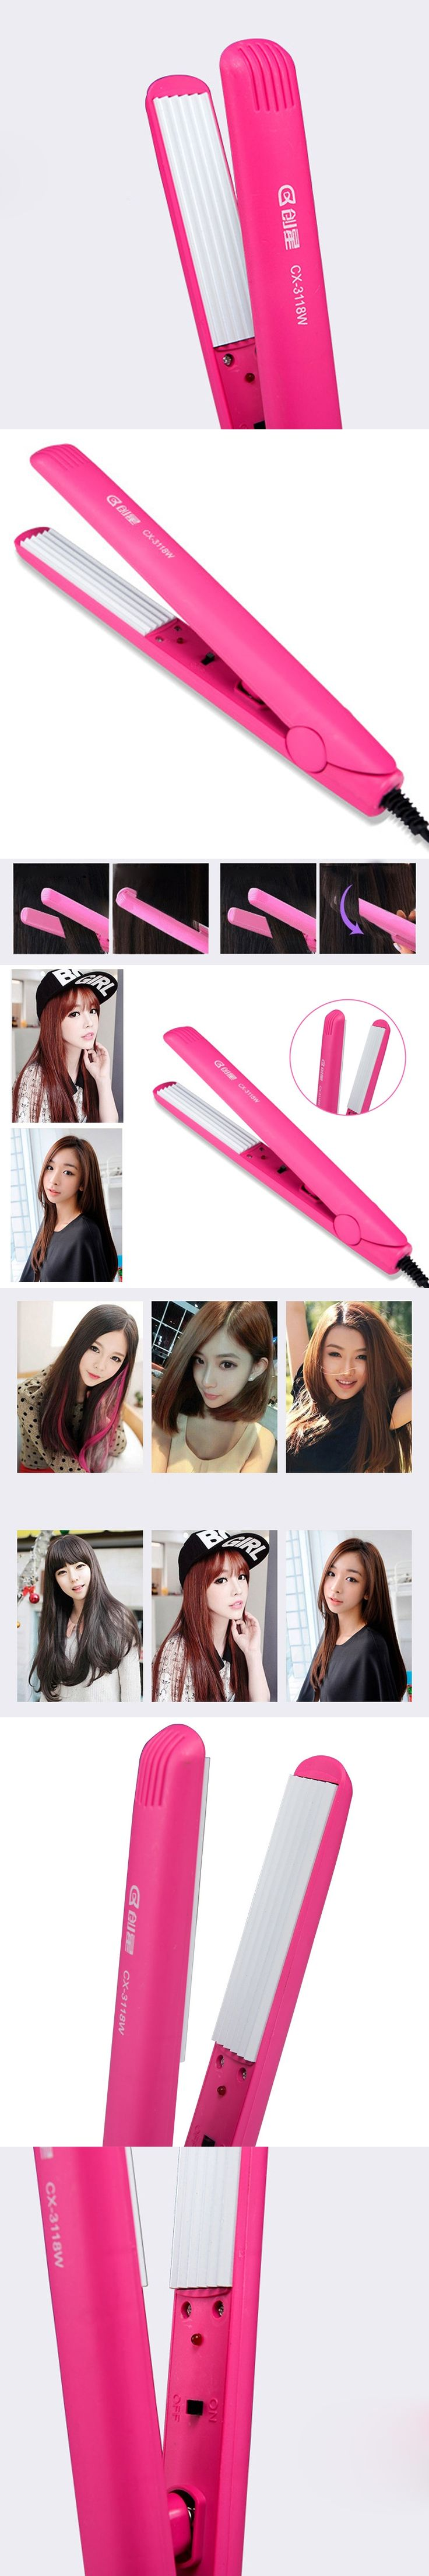 Professional Hair Crimper Crimping Wave Iron Ceramic Alloy Plate Waver Hair Curler Stylish Appearance Comfortable Grip Handle